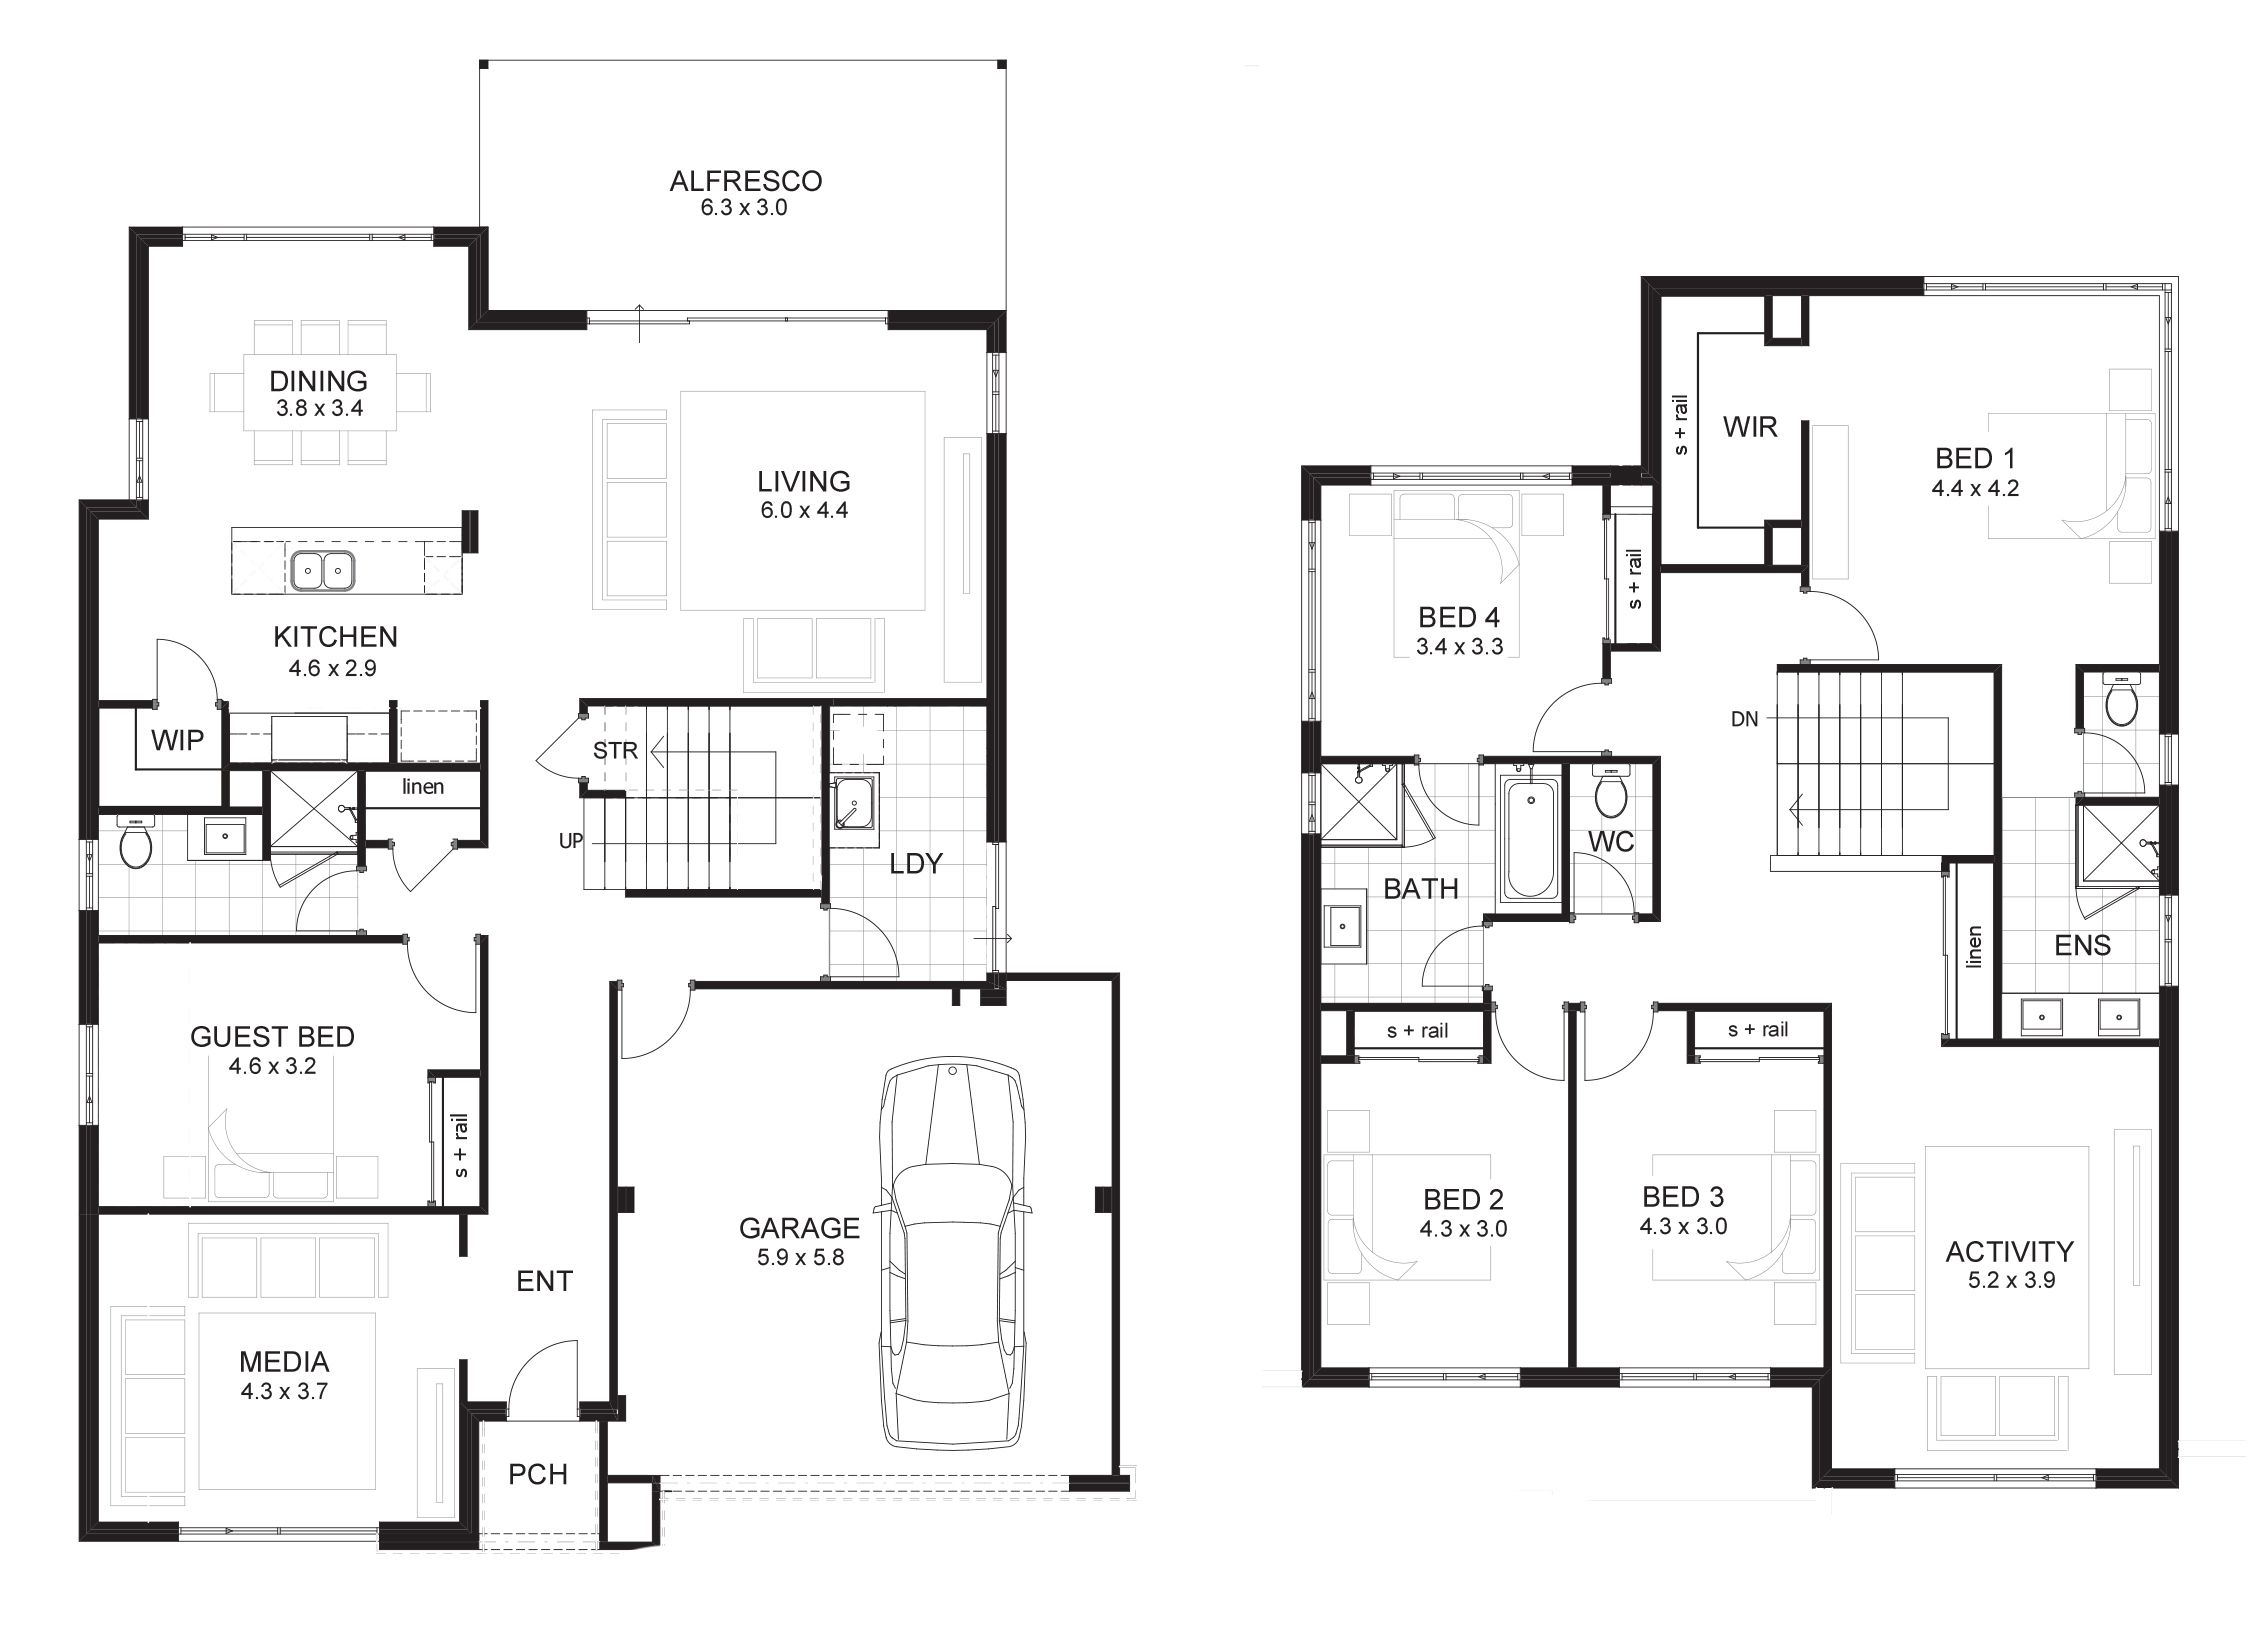 Plan With Double Garage Ideas About Storey House Plans Side Doors Pacific Building Company House Plans Australia 5 Bedroom House Plans 6 Bedroom House Plans